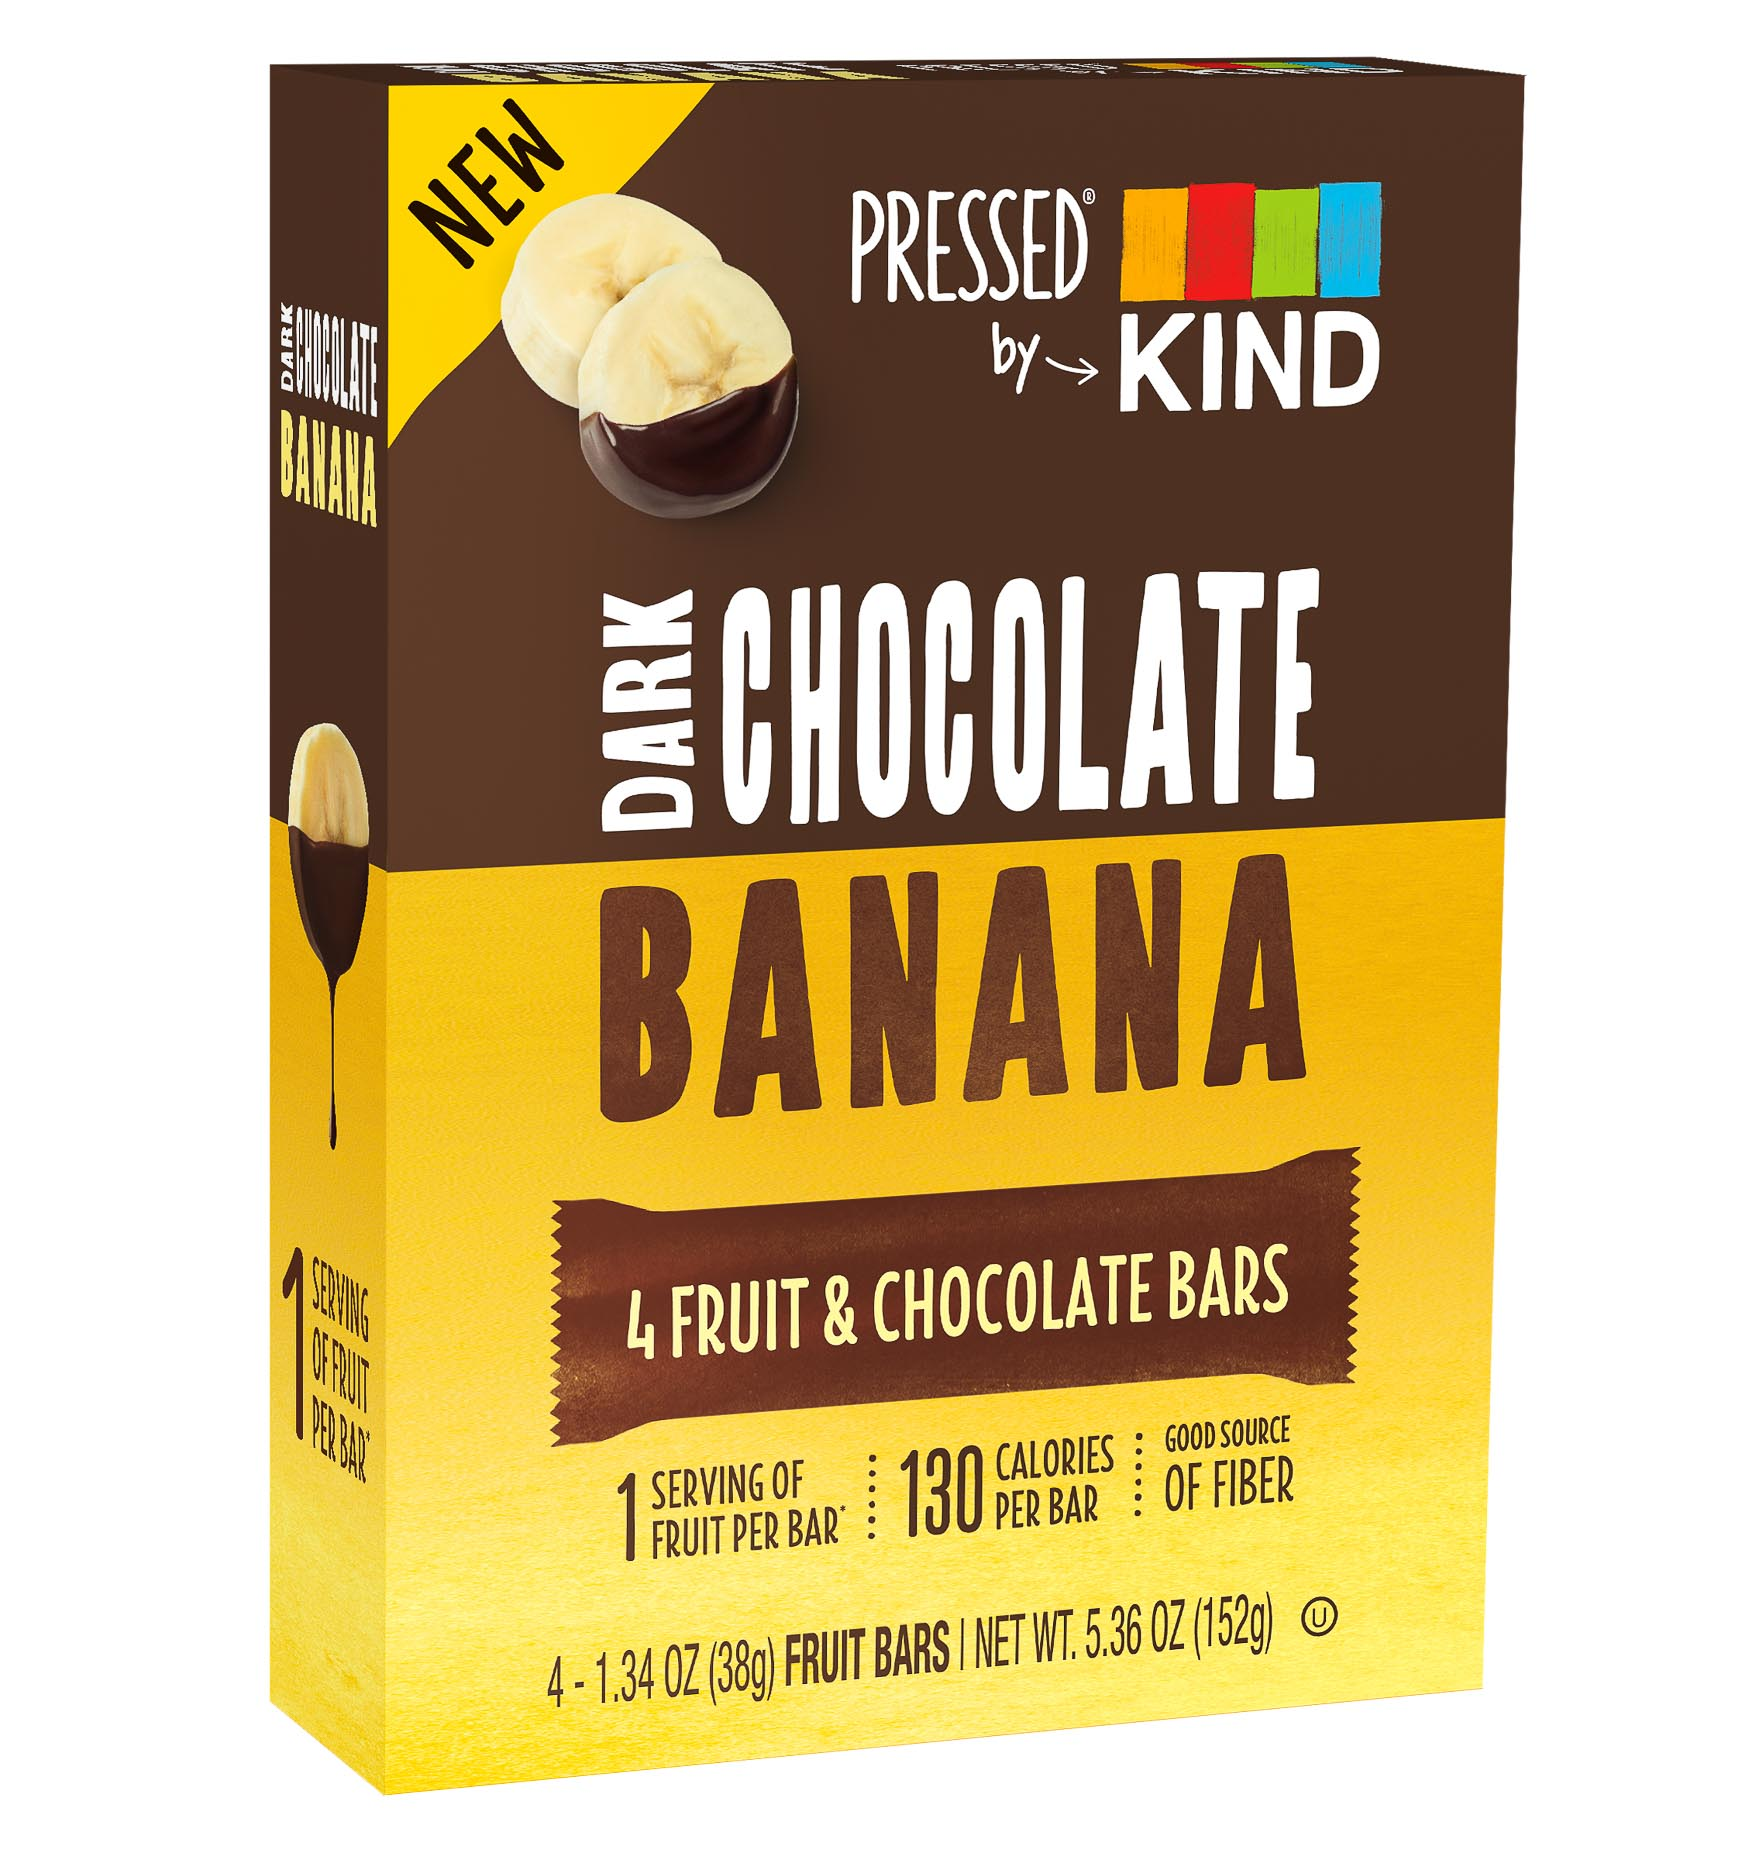 kind_Pressed_DarkChocolateBanana_20180213